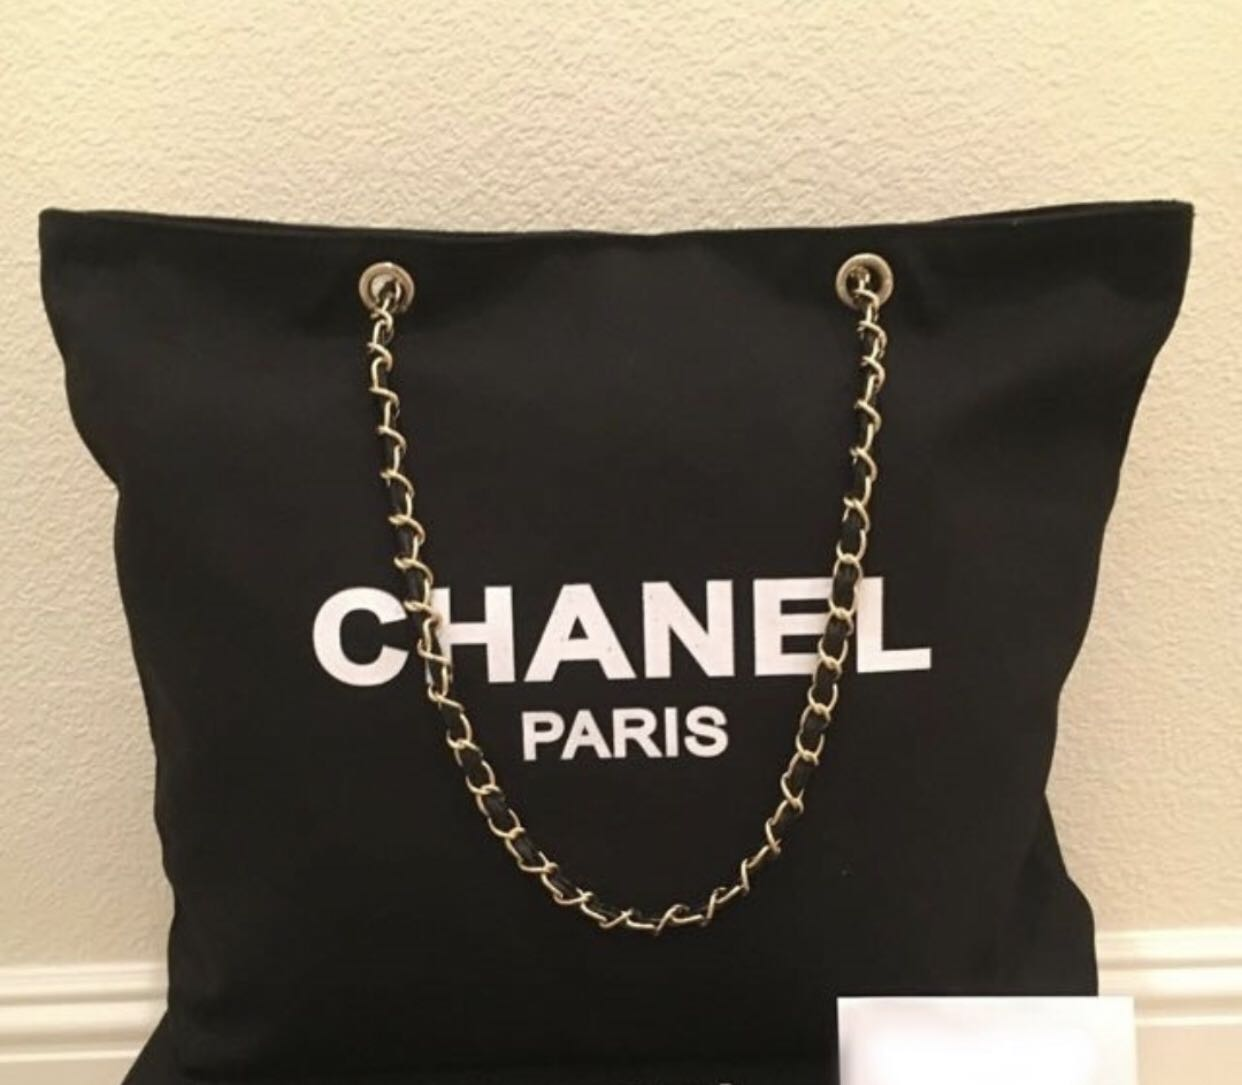 b38511fae52d72 Chanel Canvas Tote Bag, Luxury, Bags & Wallets, Others on Carousell